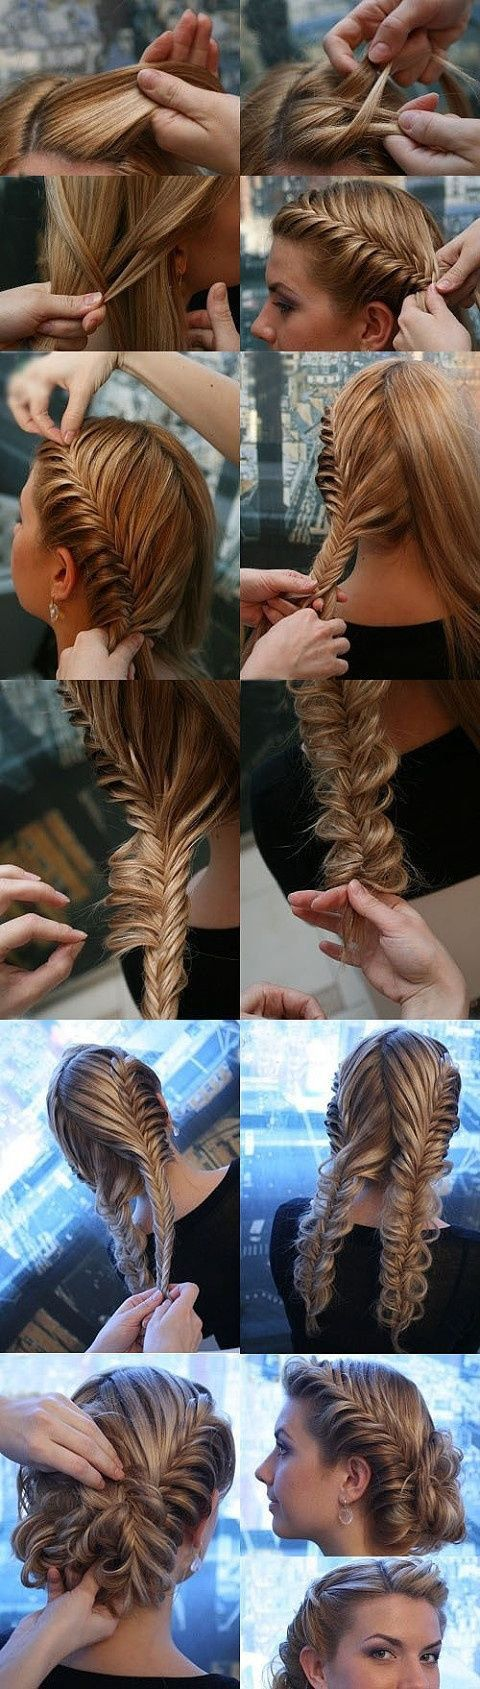 Best of Hair Tutorials. Fishtail french. Formal updo. Beautiful :)